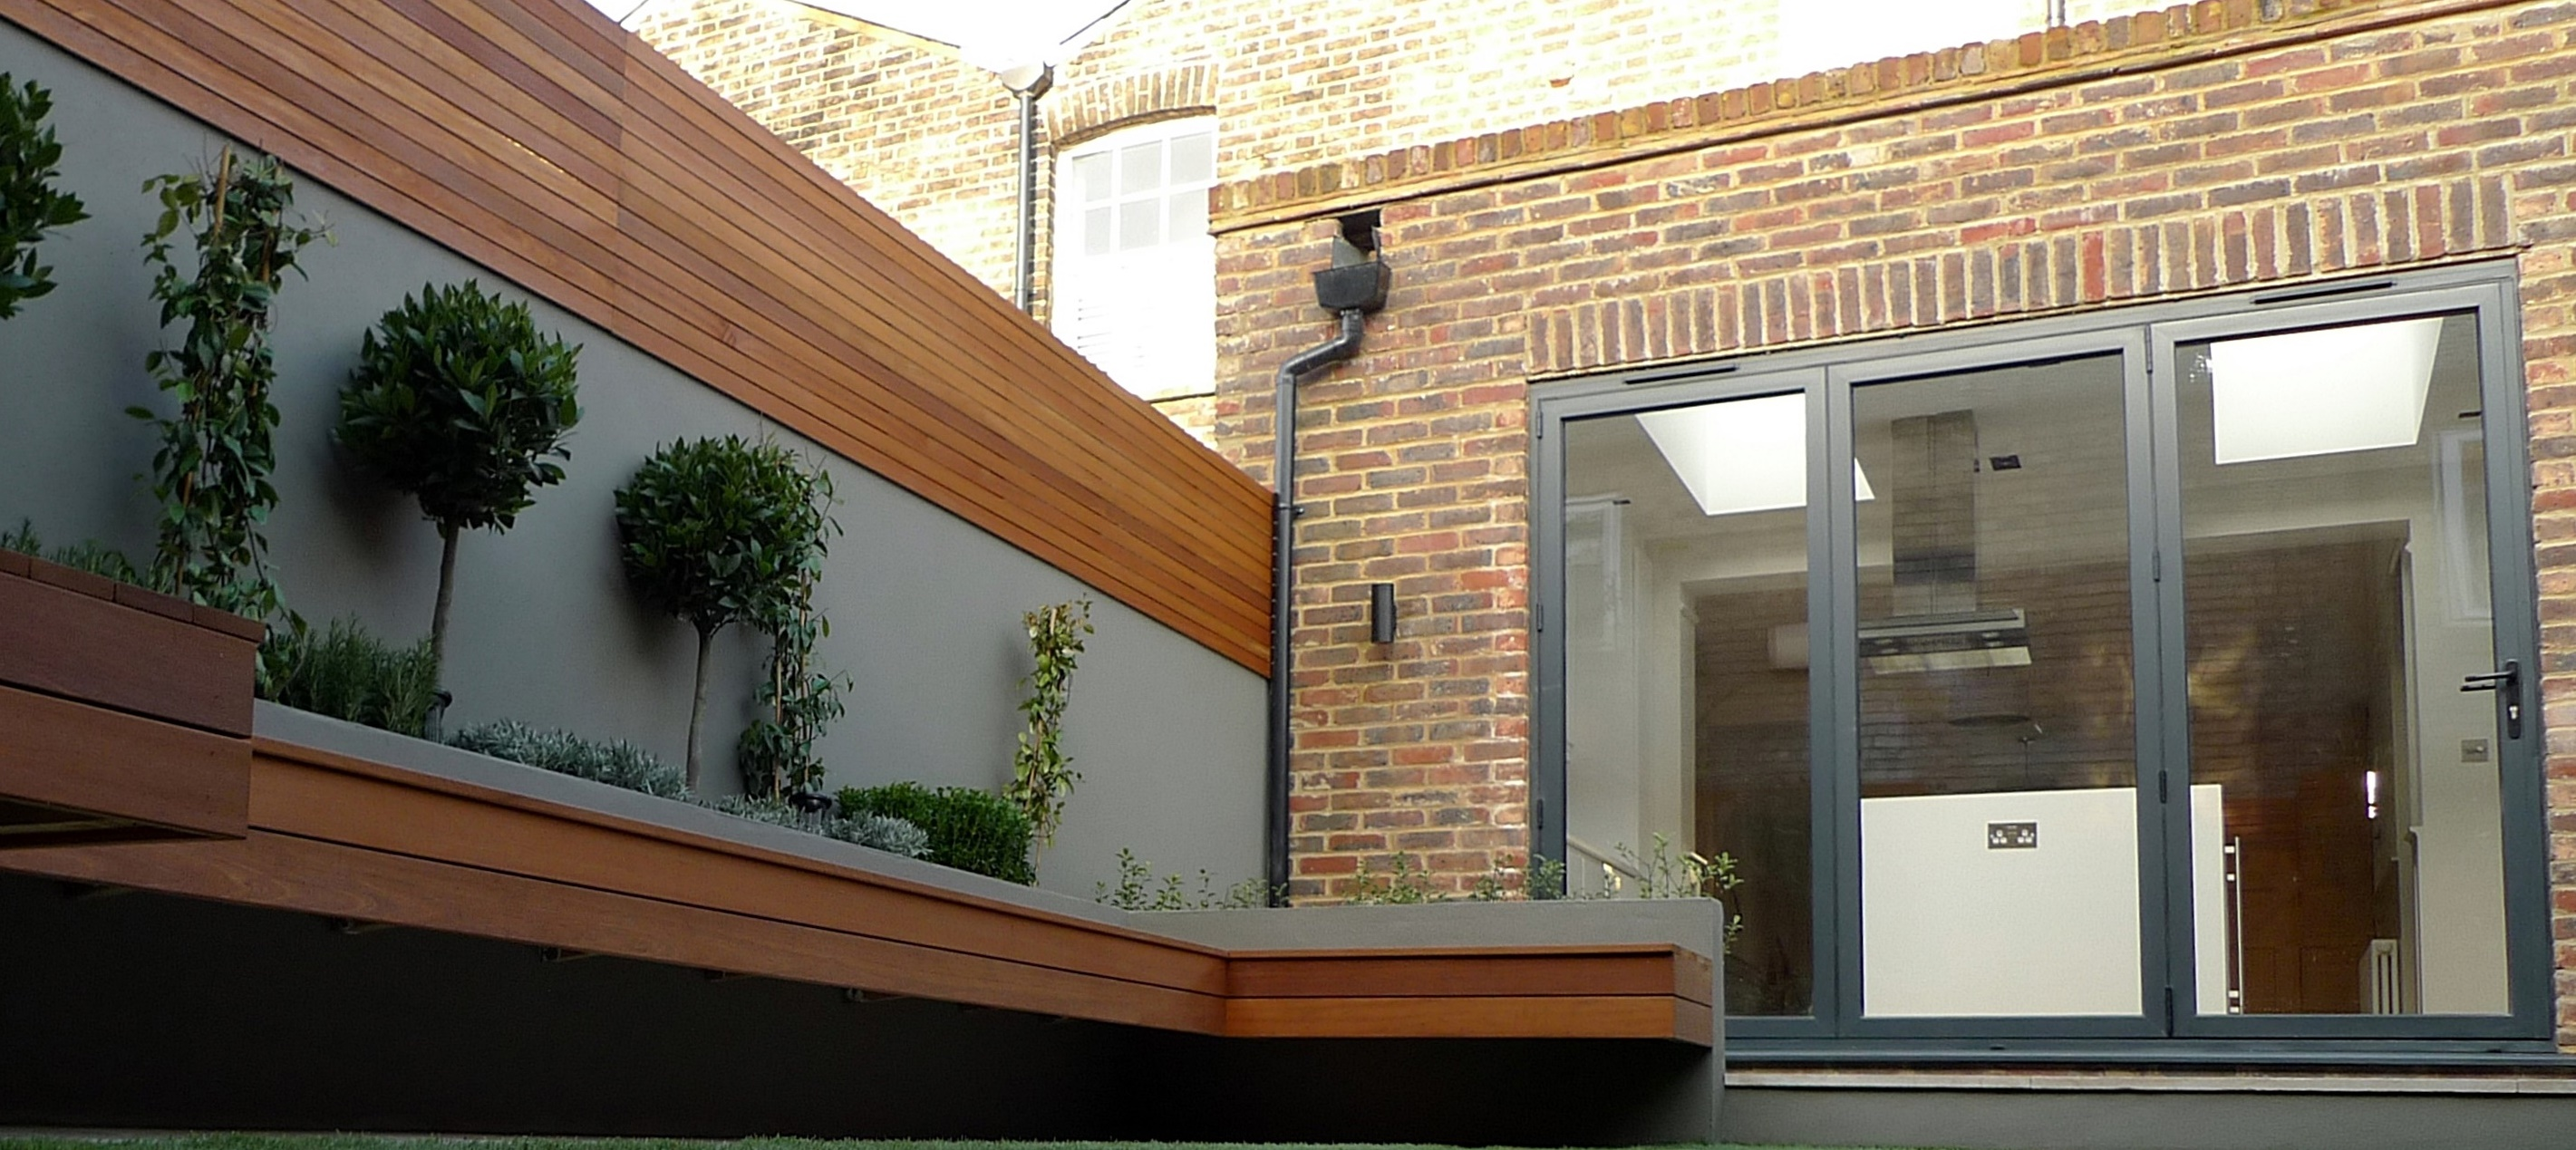 patio | london garden design - part 9